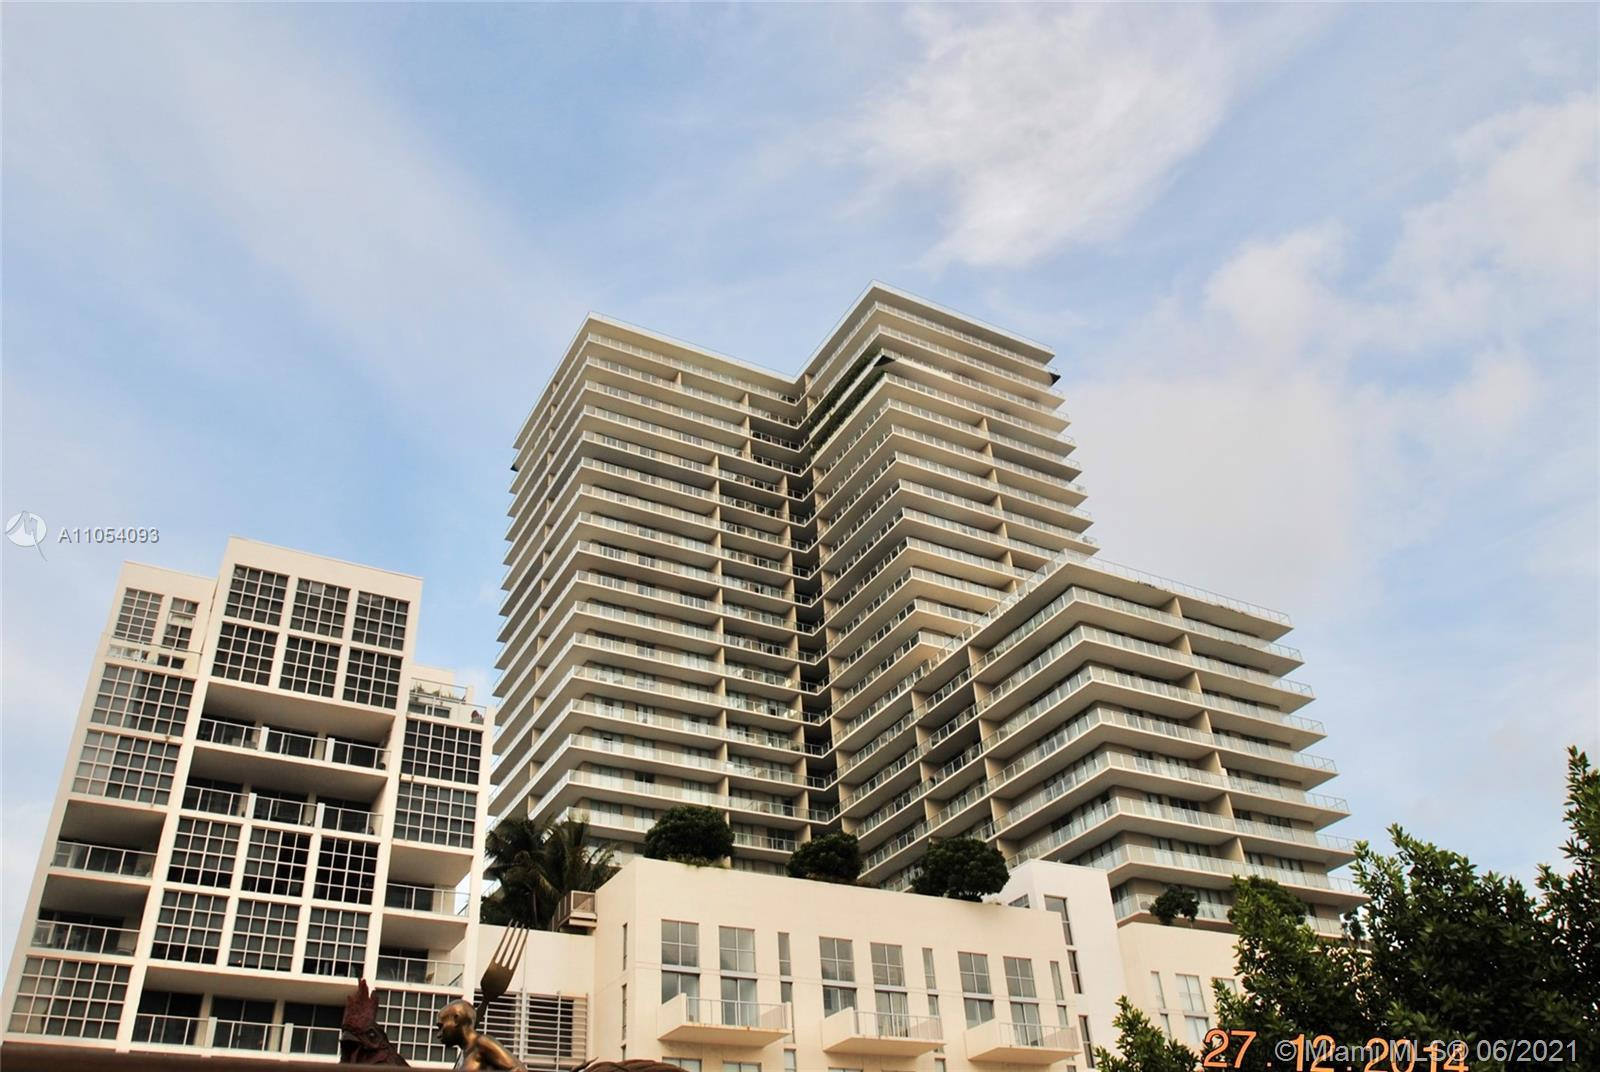 Great opportunity to own a move-in ready unit in desirable Midtown location. High floor, well mainta